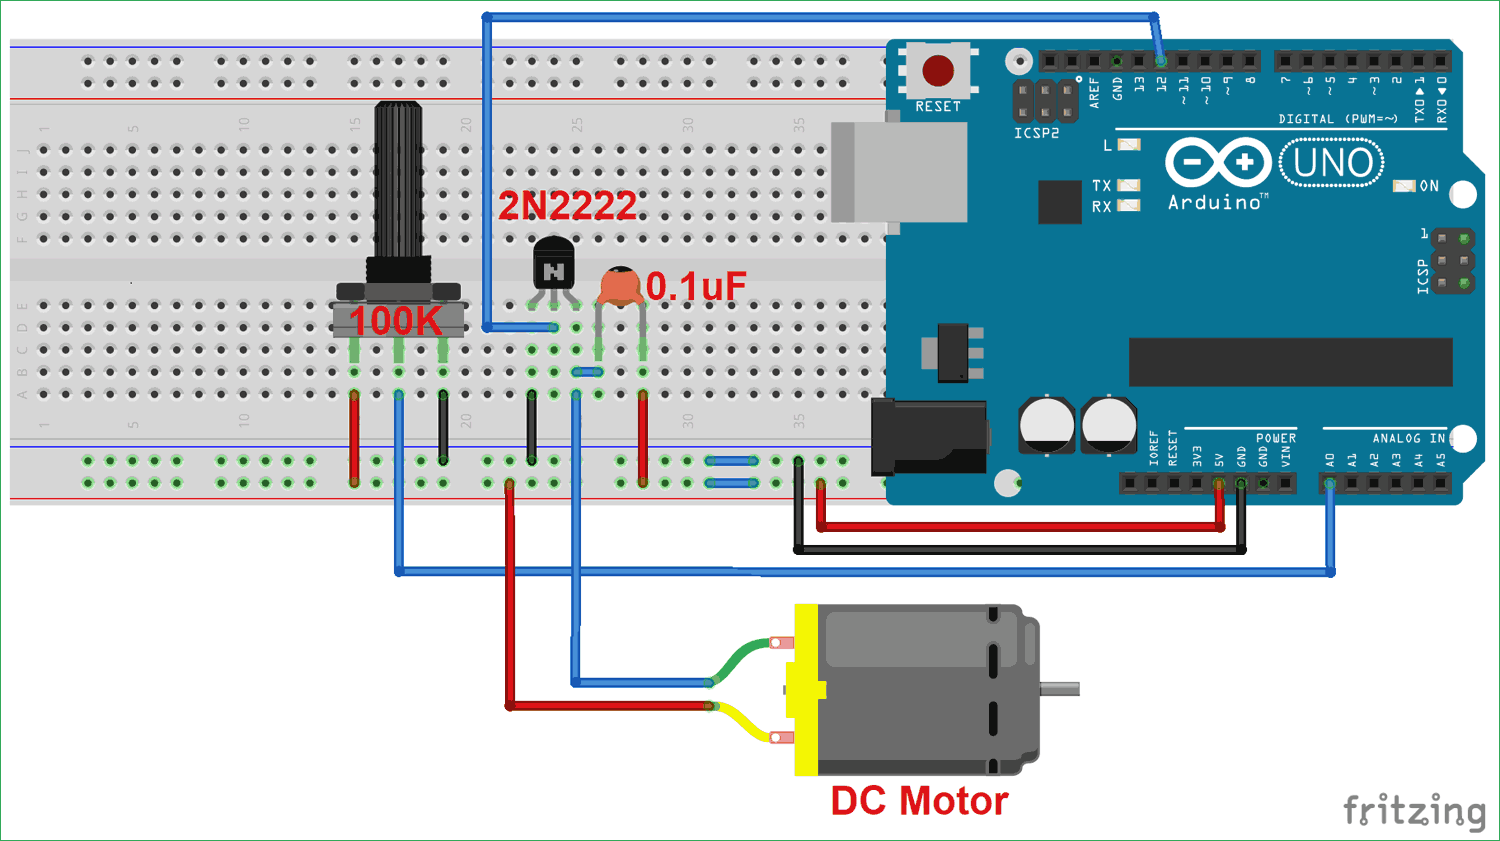 dc motor speed control using arduino and potentiometer Potentiometer Wiring Connection Diagram dc motor speed control circuit diagram using arduino and potentiometer